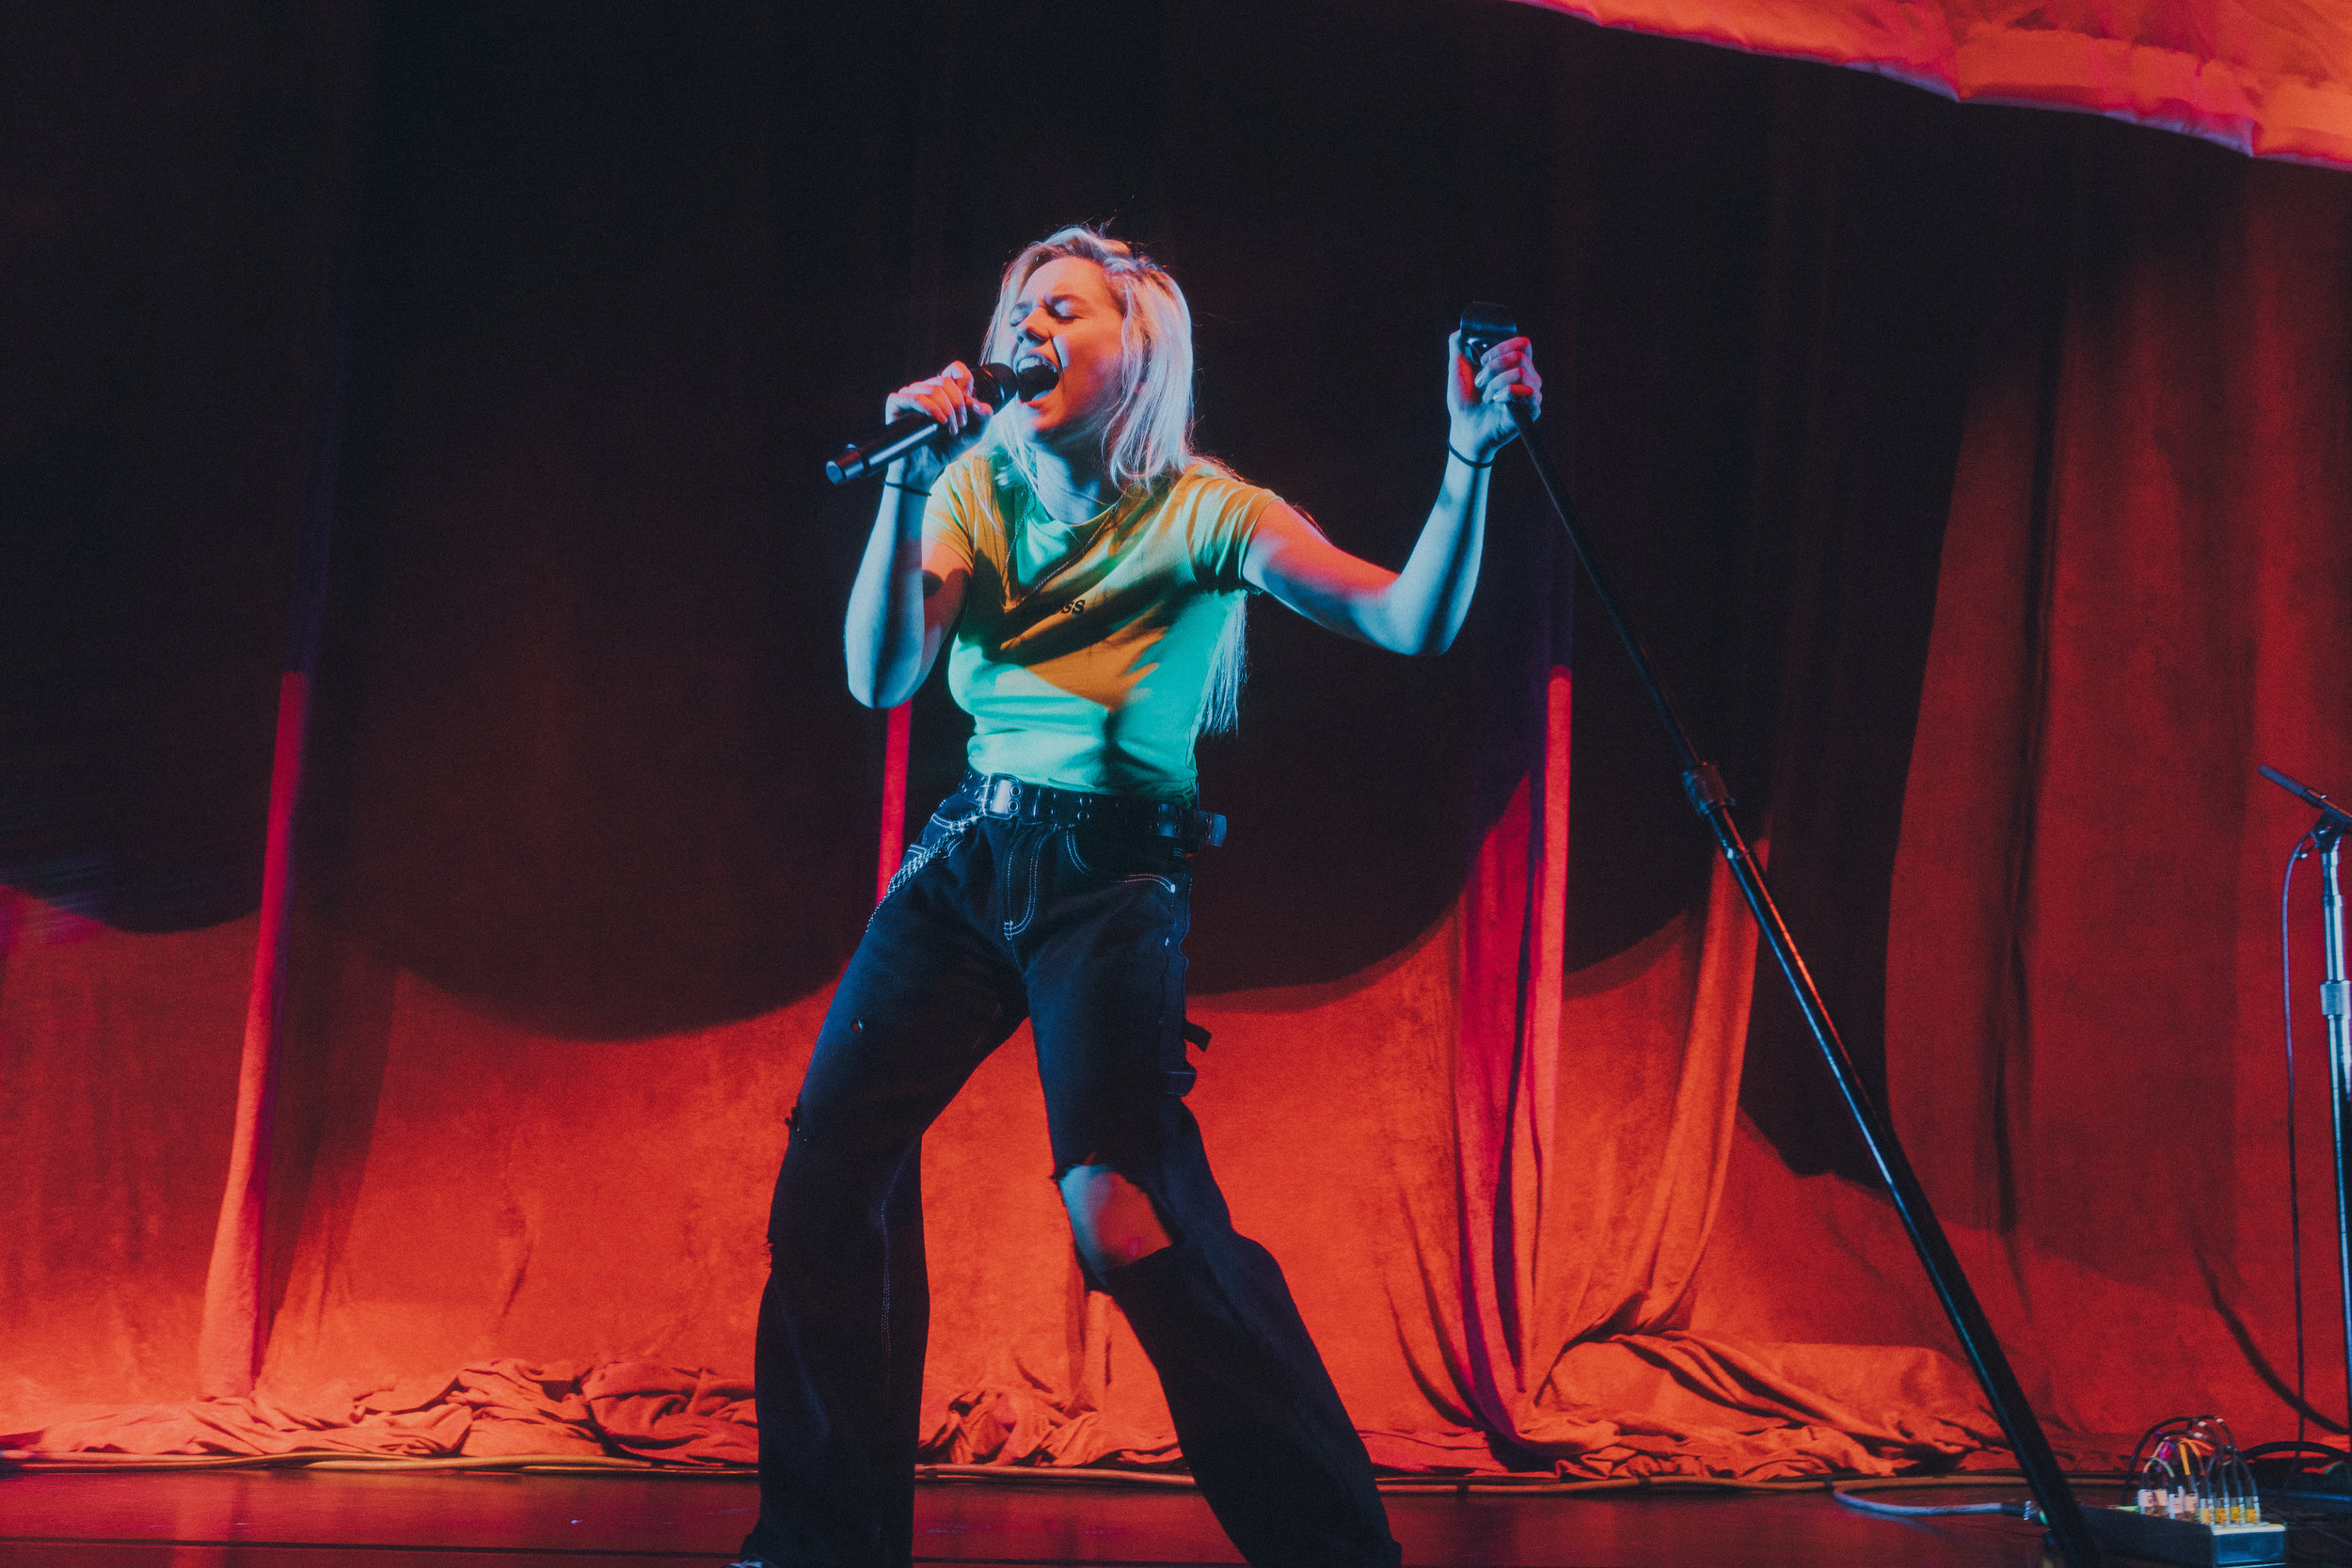 "Pop artist Carlie Hanson has an upcoming EP and recently released ""Goodbye"" which was featured on the soundtrack for the Netflix original film, ""Sierra Burgess Is a Loser."" She opened for pop singer Troye Sivan at the Greek Theatre Wednesday. (Dillon Matthew 